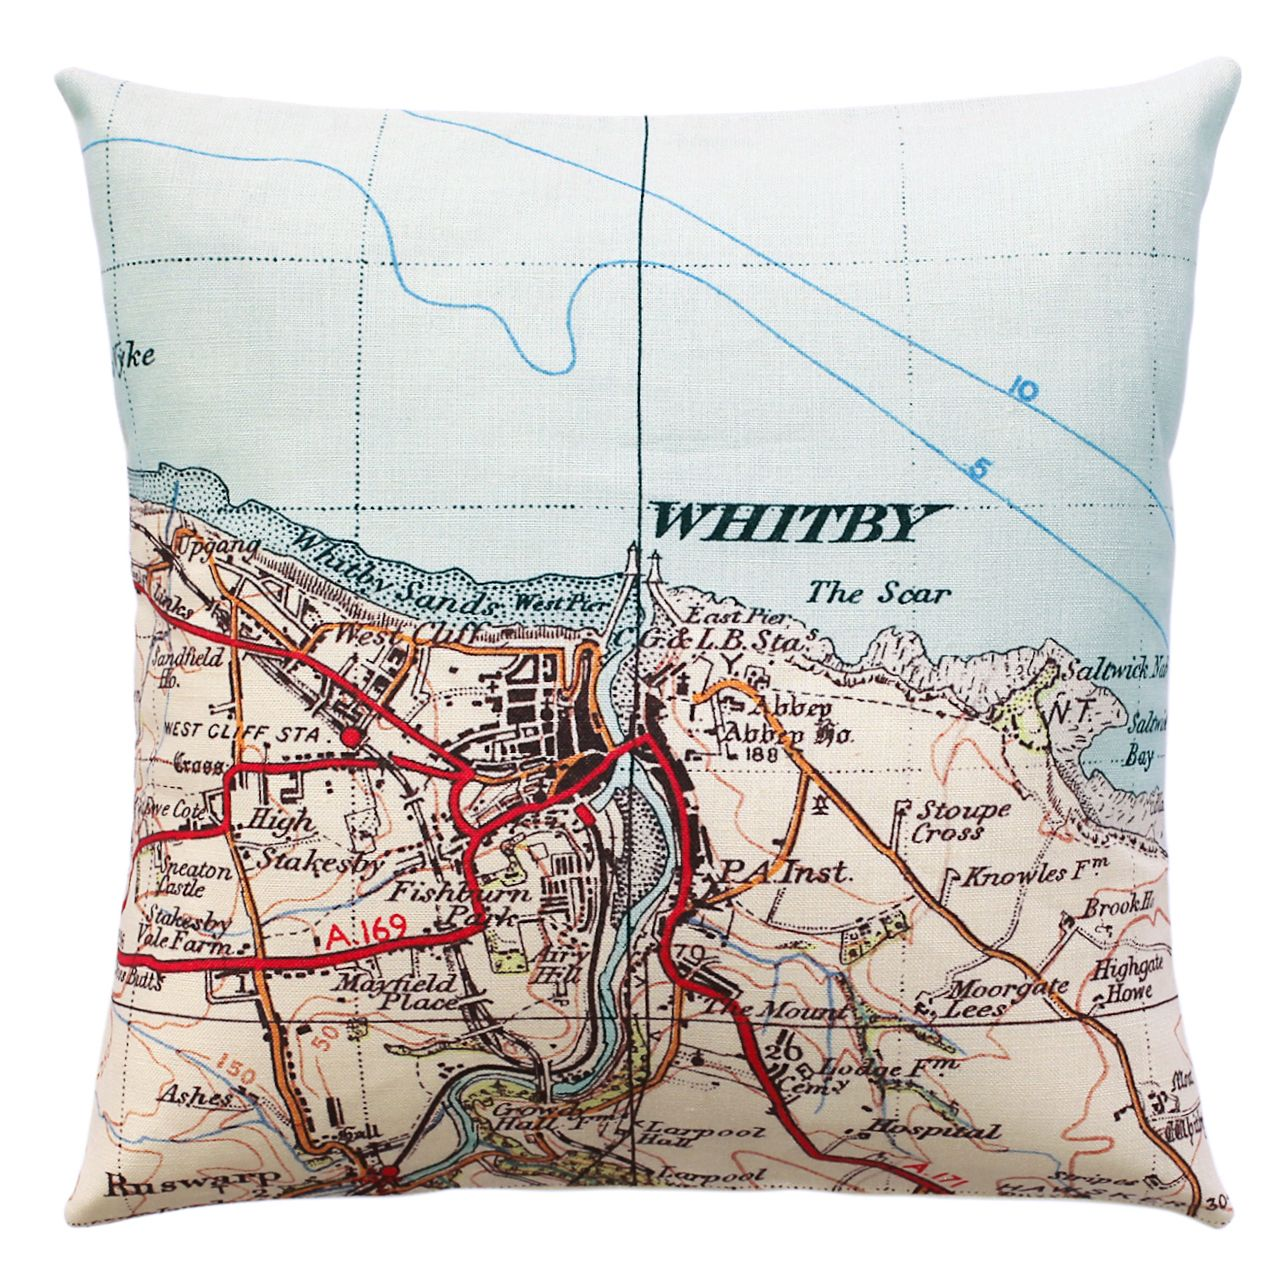 Ordinance Survey Map of Whitby printed on a cushion by Jane Revitt